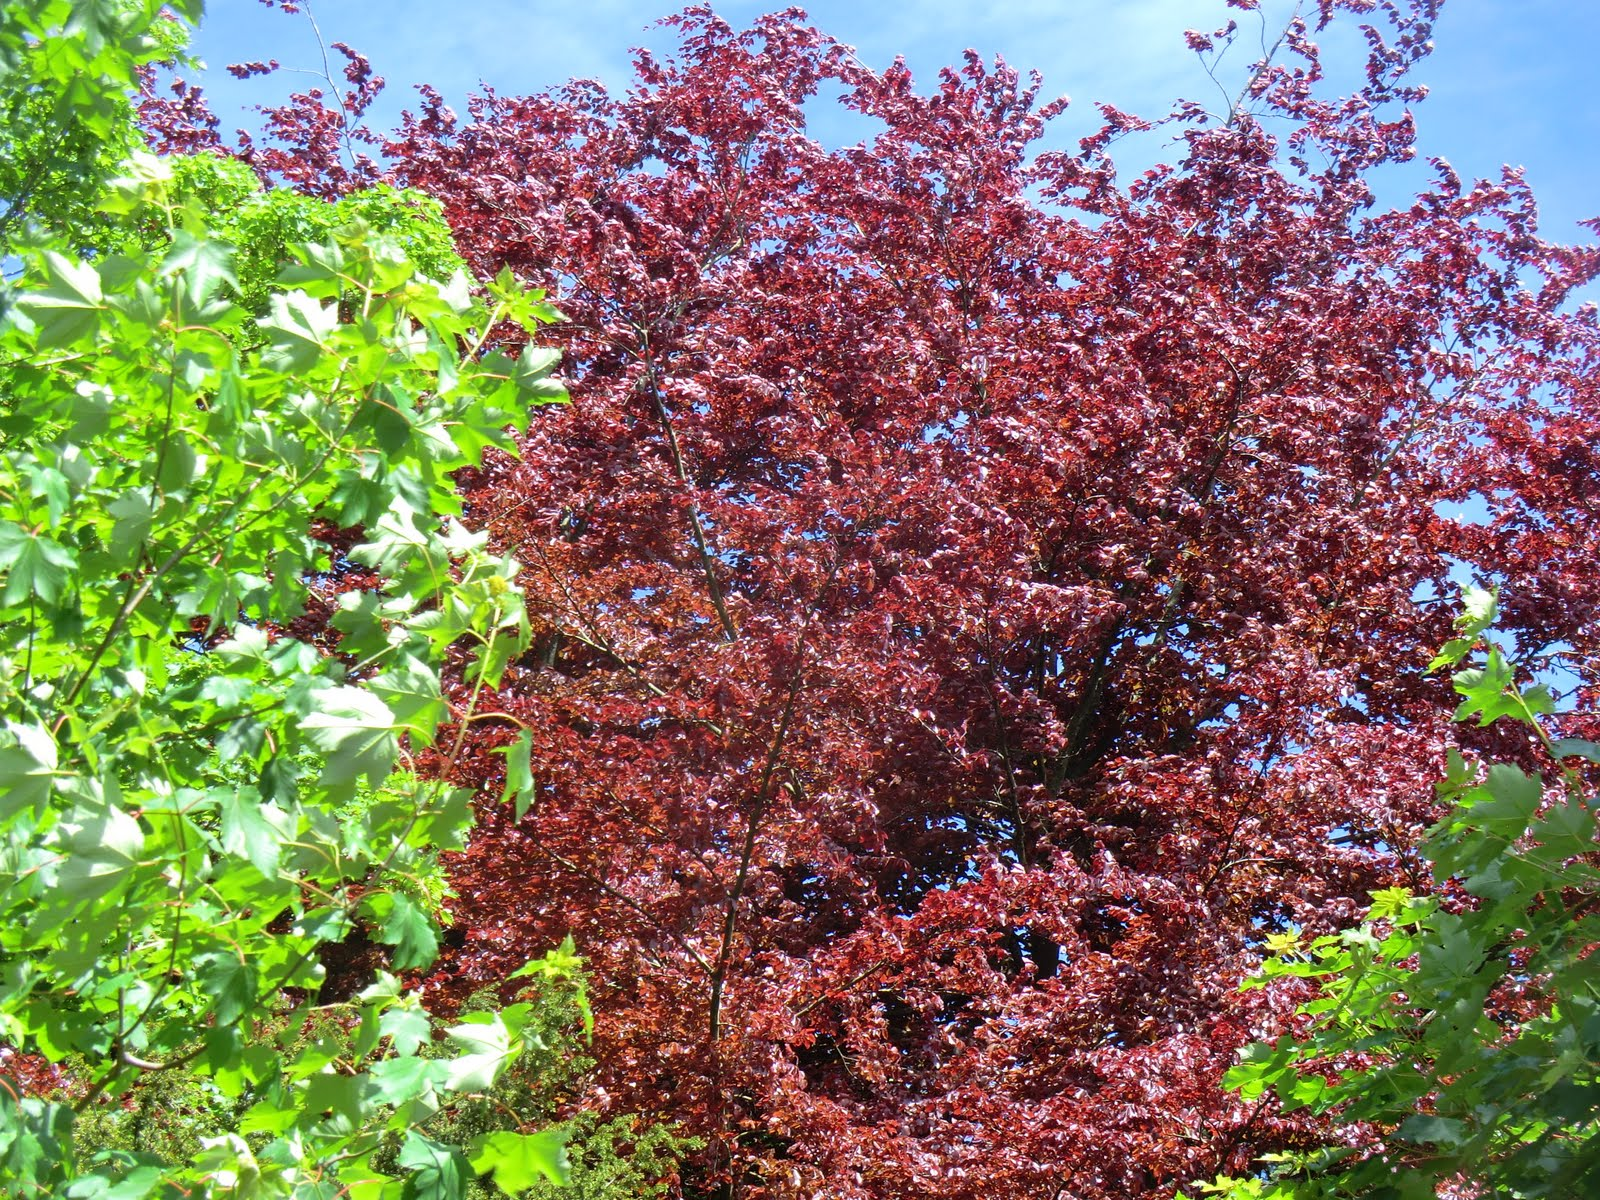 CIMG0340 Copper beech on Church Lane